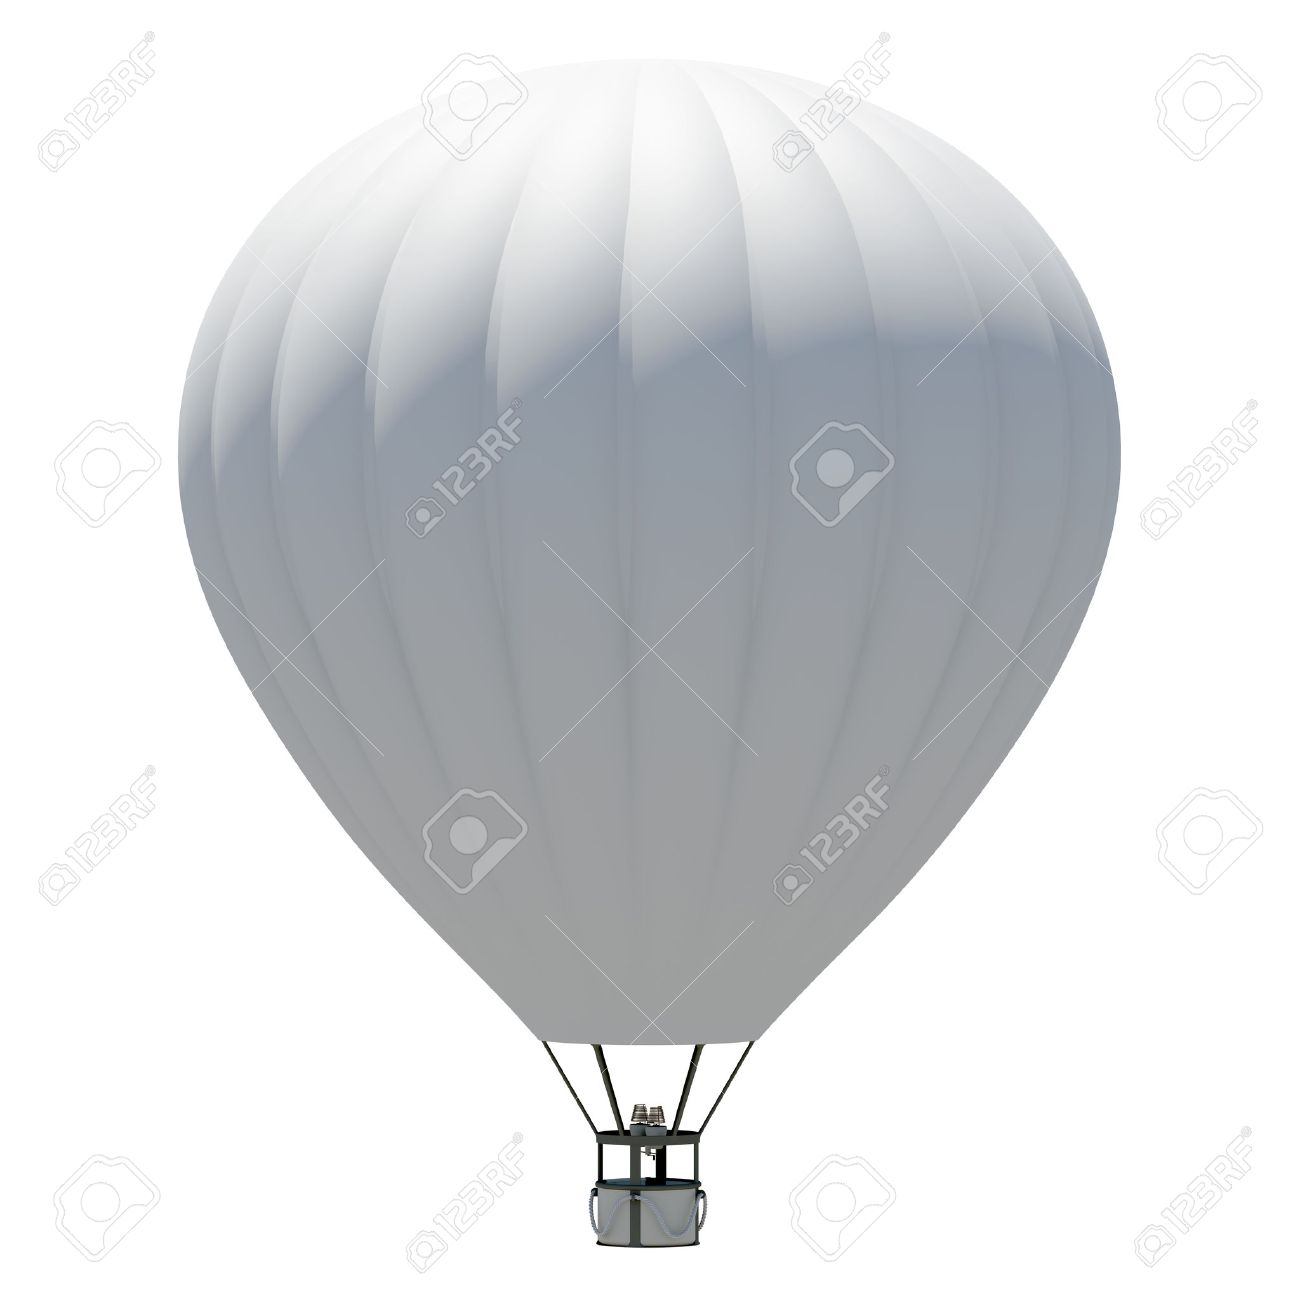 Hot Air Balloon Isolated On The White Background Stock Photo ...